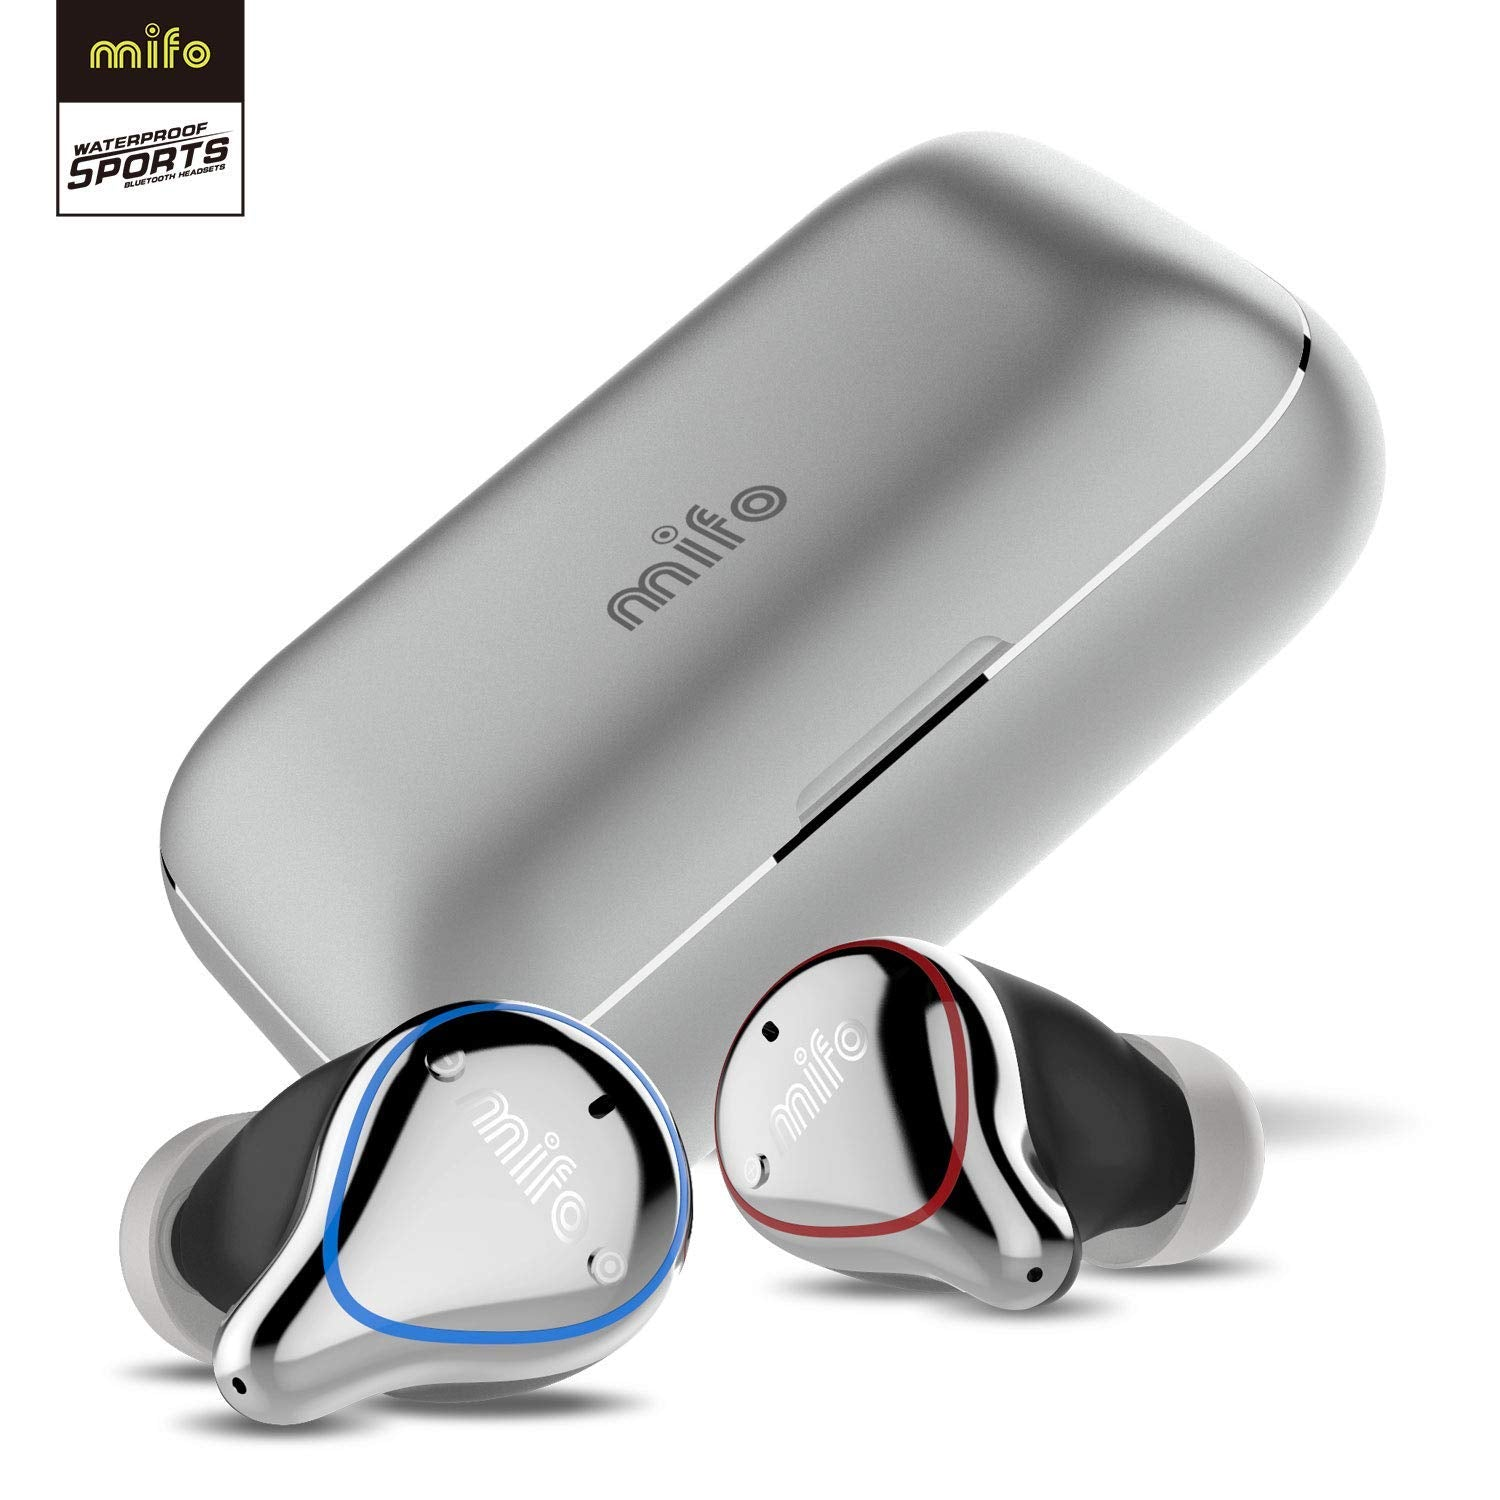 Image result for mifo wireless earbuds